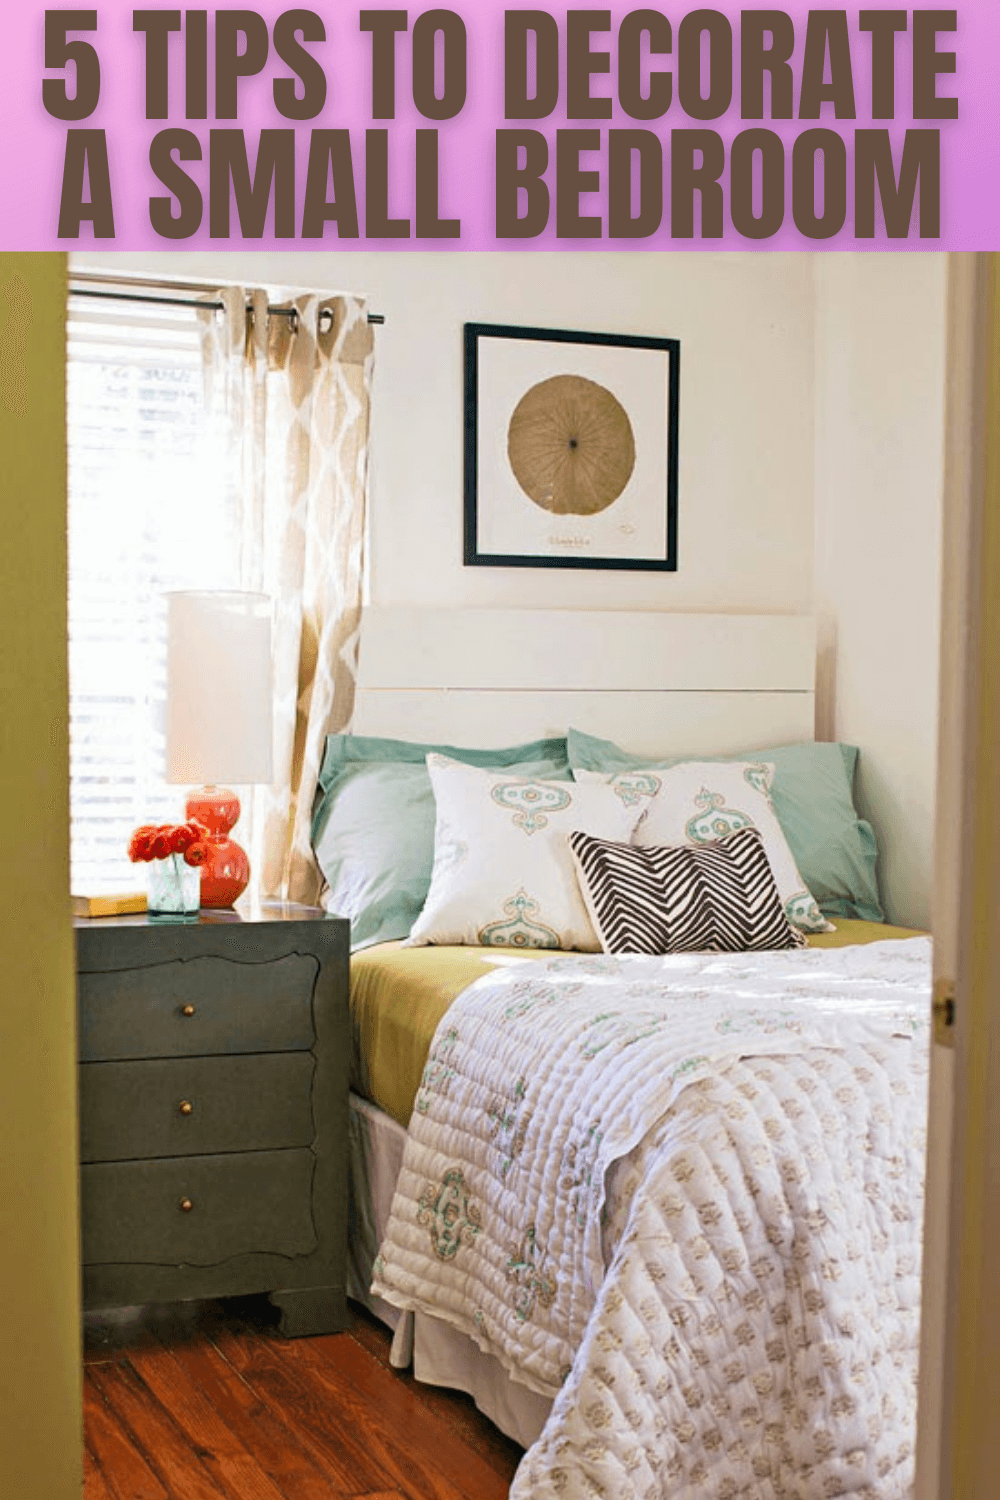 5 TIPS TO DECORATE A SMALL BEDROOM